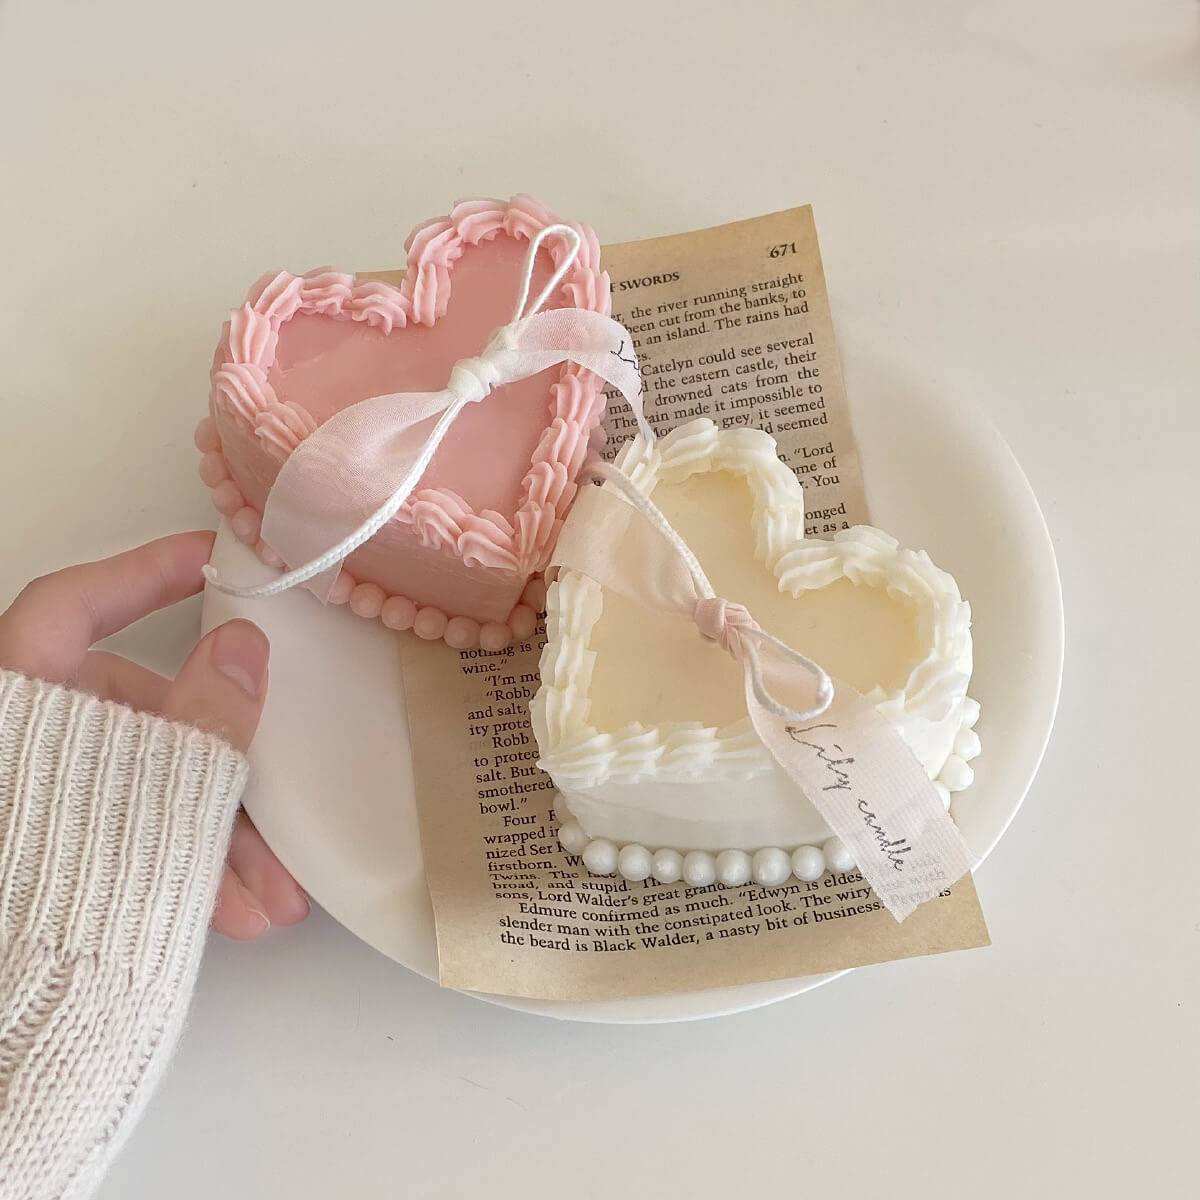 Lily candle(リリーキャンドル)のheart lace cake candle/¥2,500(税込み)